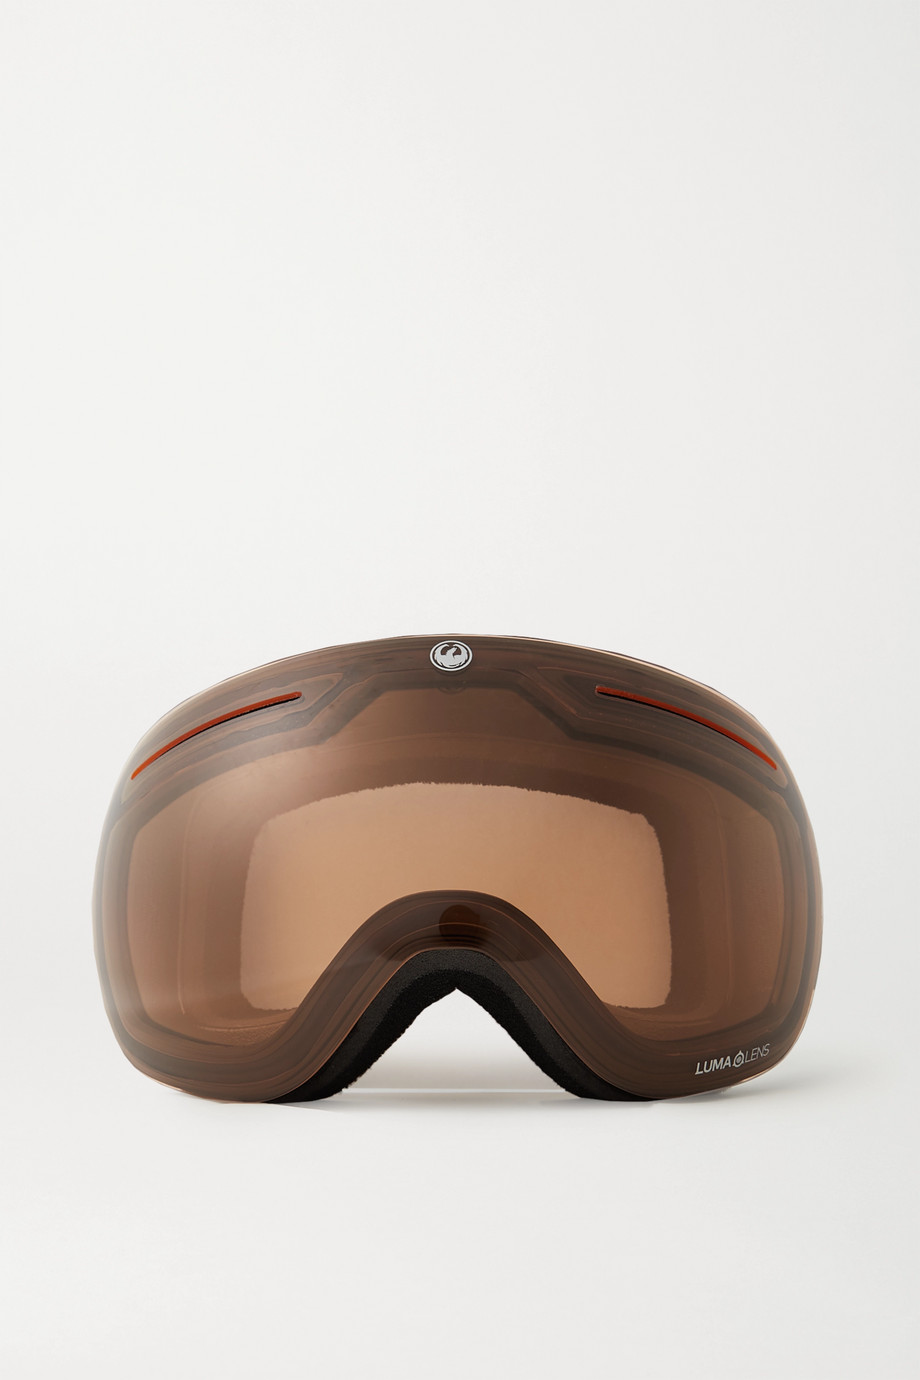 Dragon X1 mirrored ski goggles